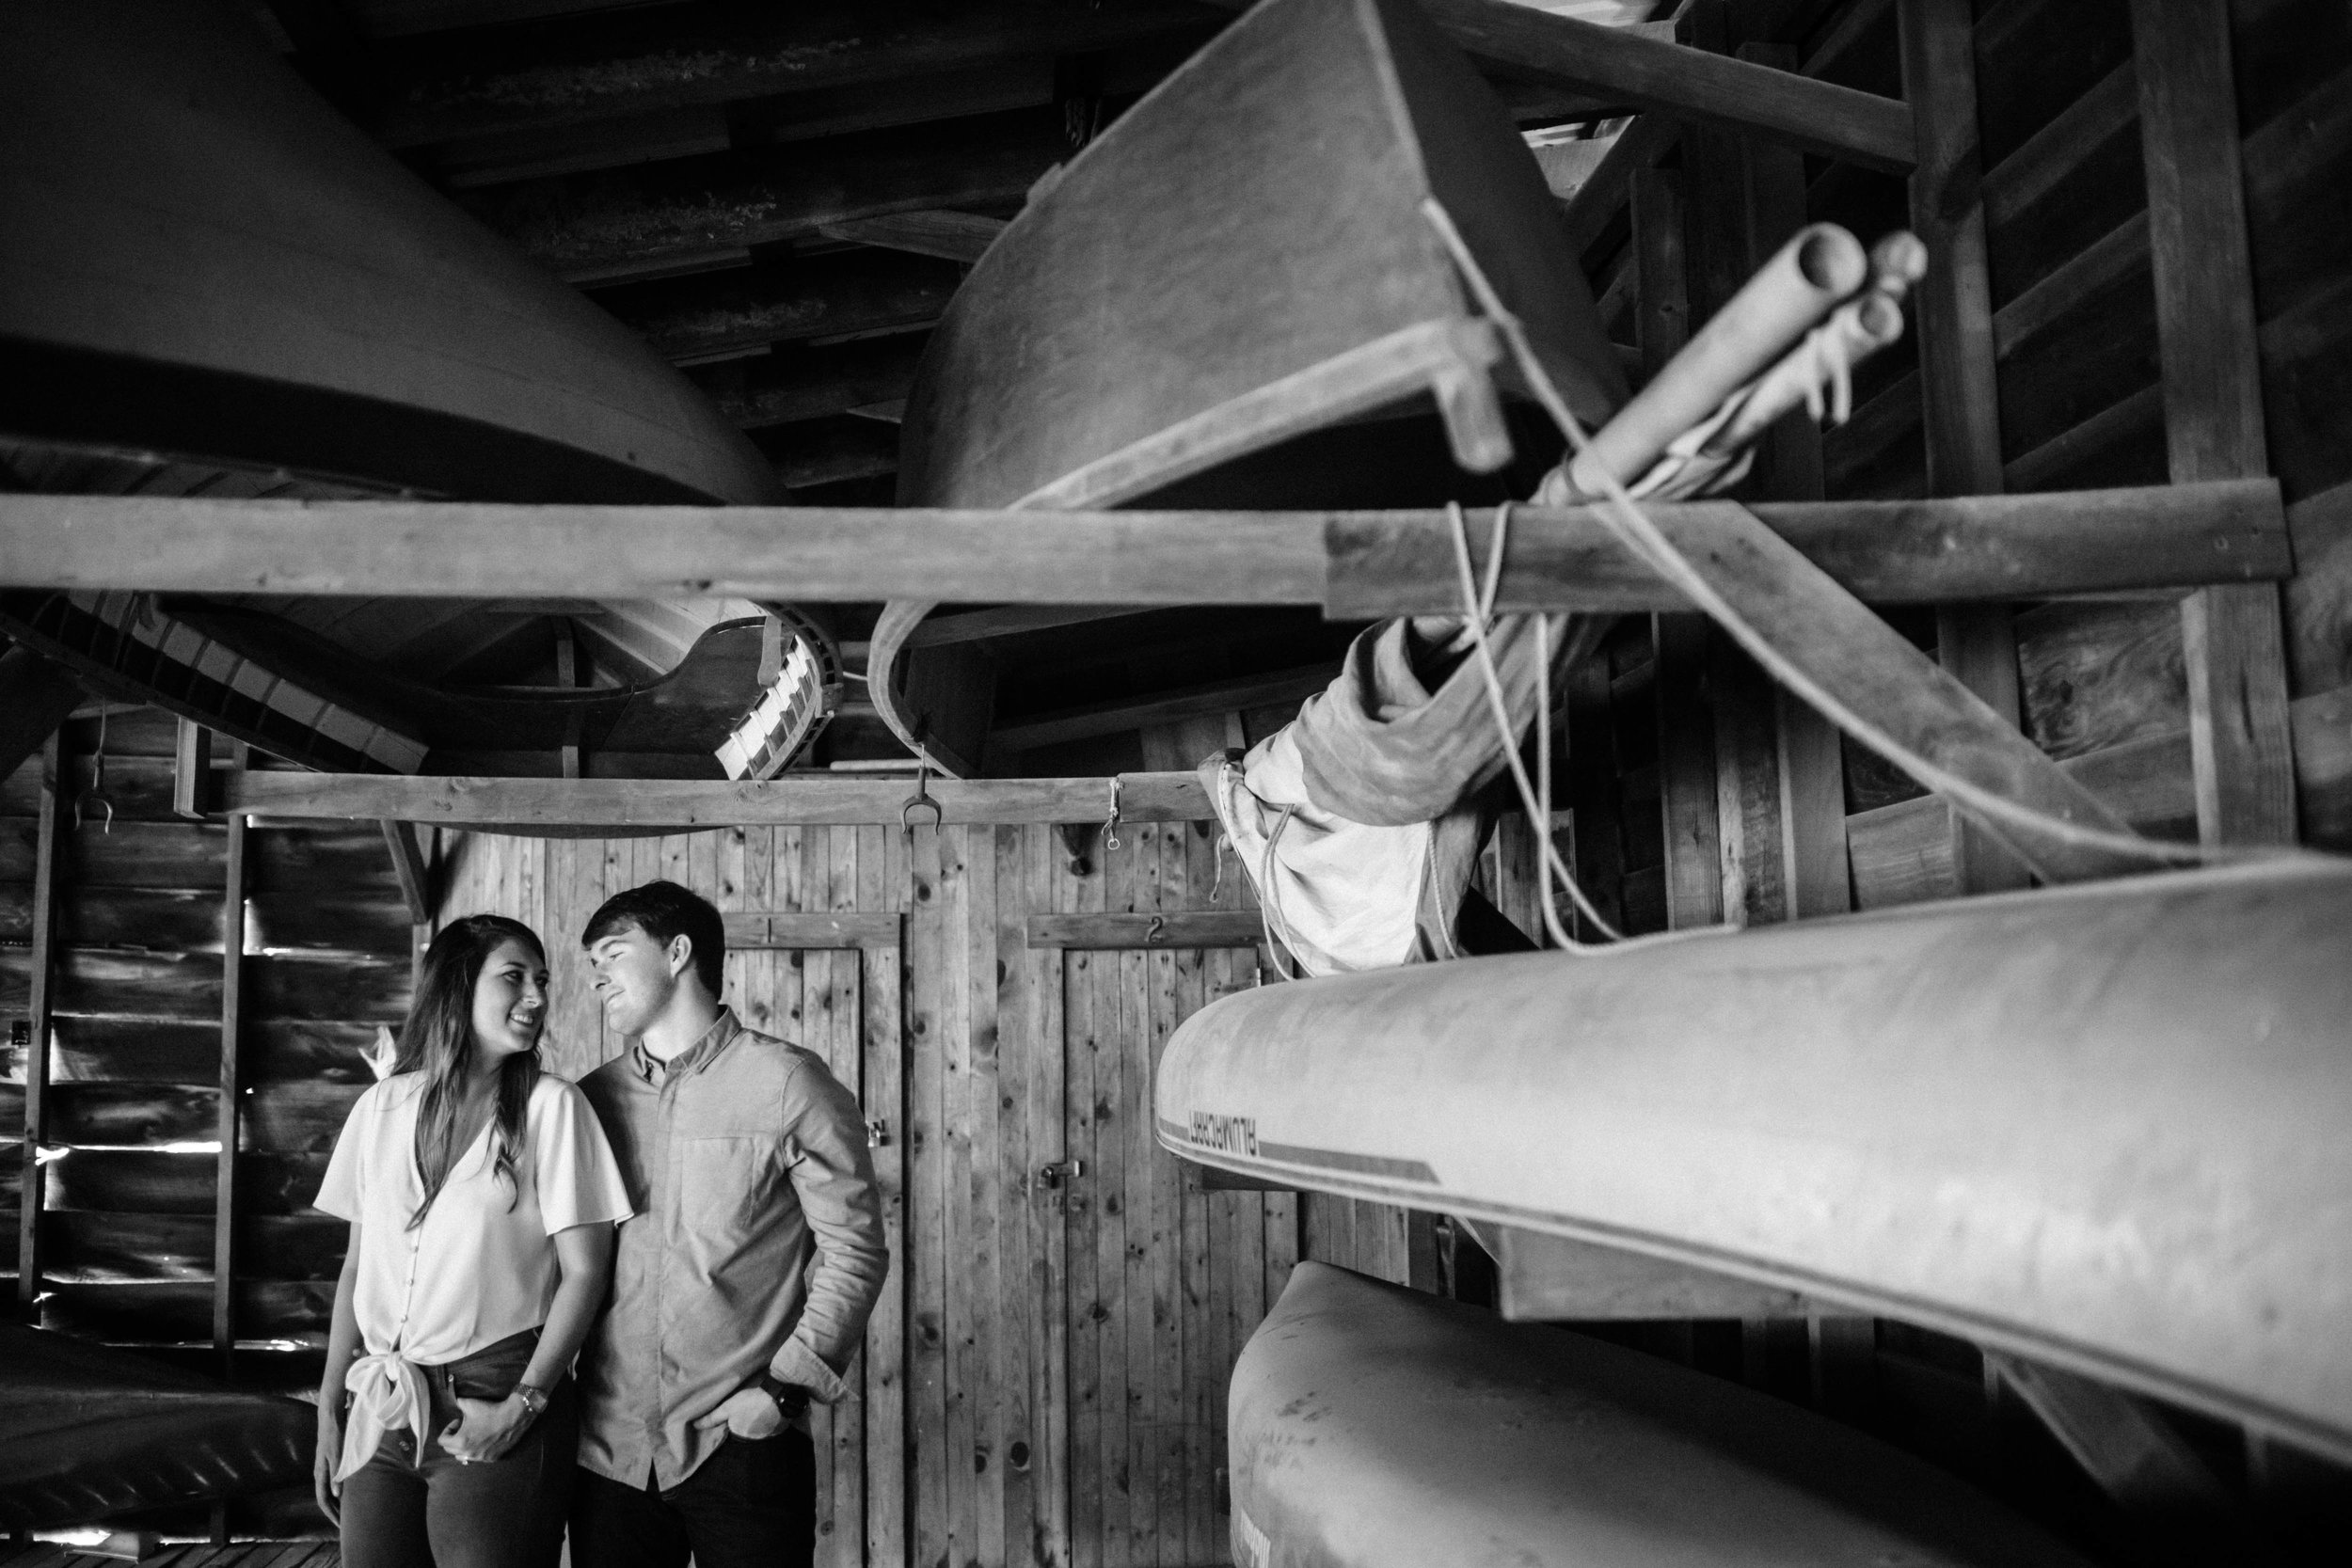 san francisco oakland bay area california sf atlanta georgia camp wes anderson moonrise kingdom inspired canoe engagement nontraditional wedding photographer -168.jpg